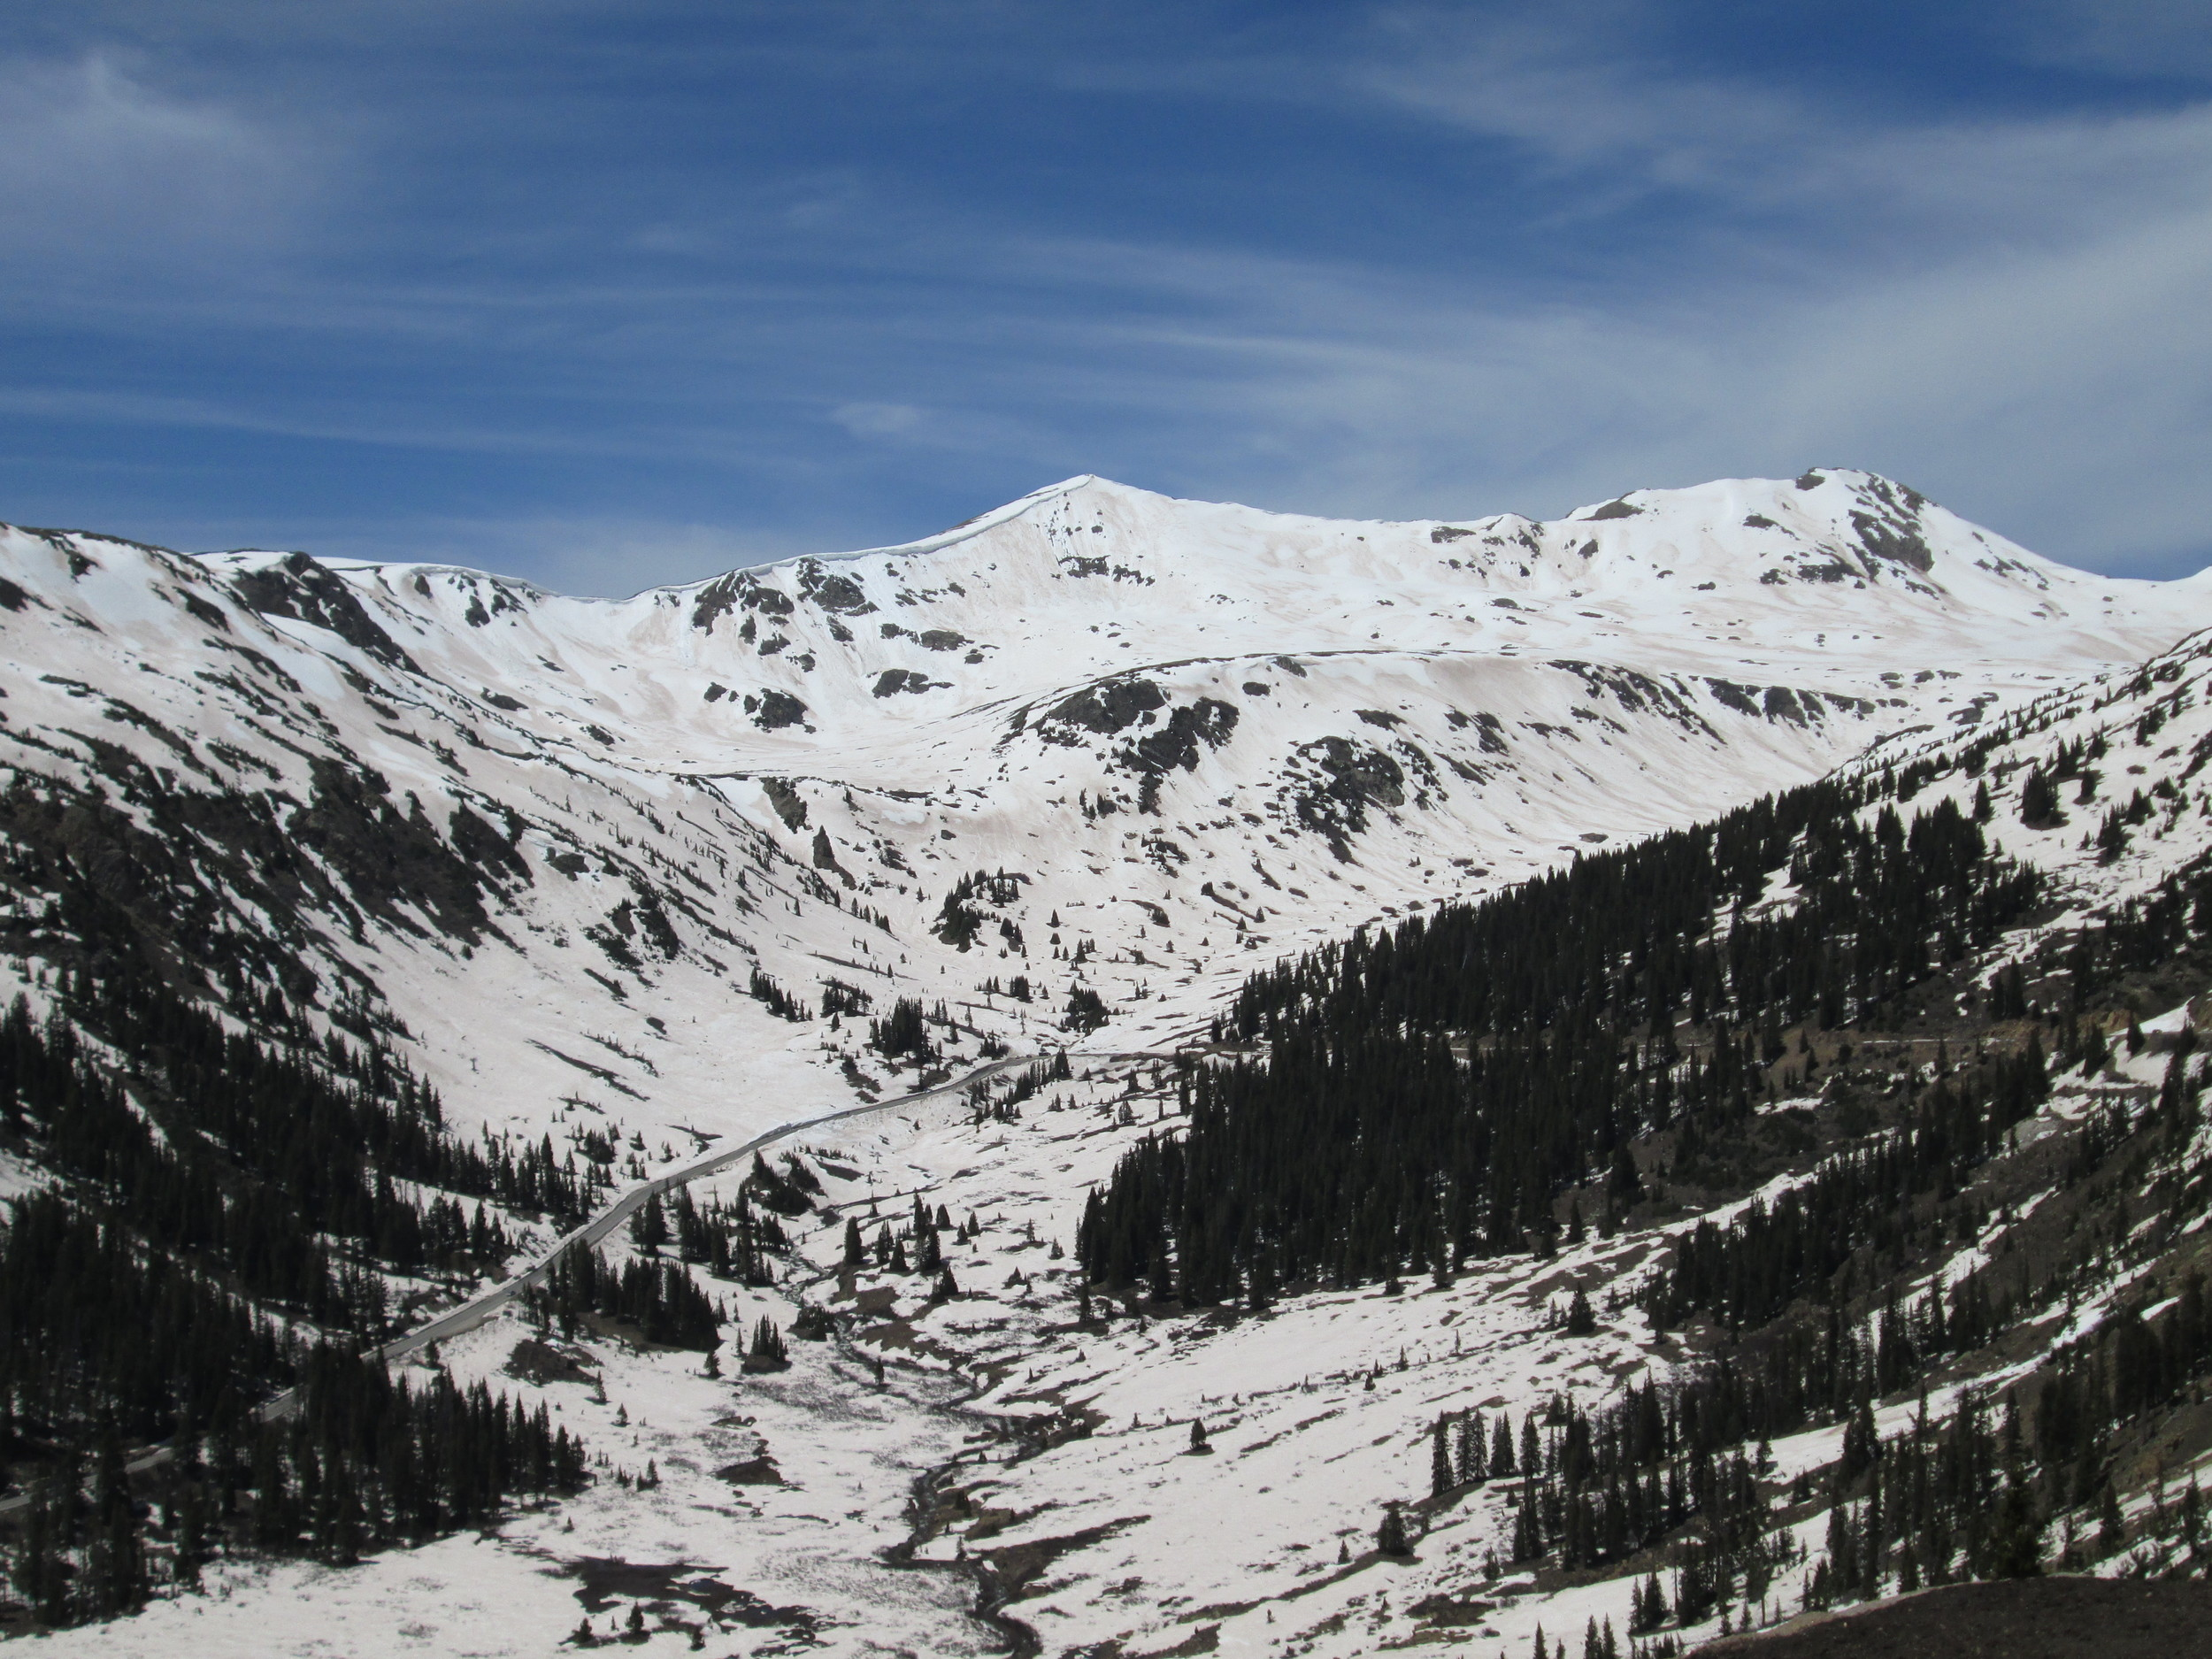 The early June date of this final CODOS circuit enabled a special visit to the recently opened Independence Pass, at 12,095'. Although patches of the Memorial Day weekend storm's clean snow remained, dust was rapidly re-emerging including heavy deposition of the most recent layer D8, the May 11, fawn-colored dust layer logged at Senator Beck Basin and observed extensively during this June 2-4 field circuit.